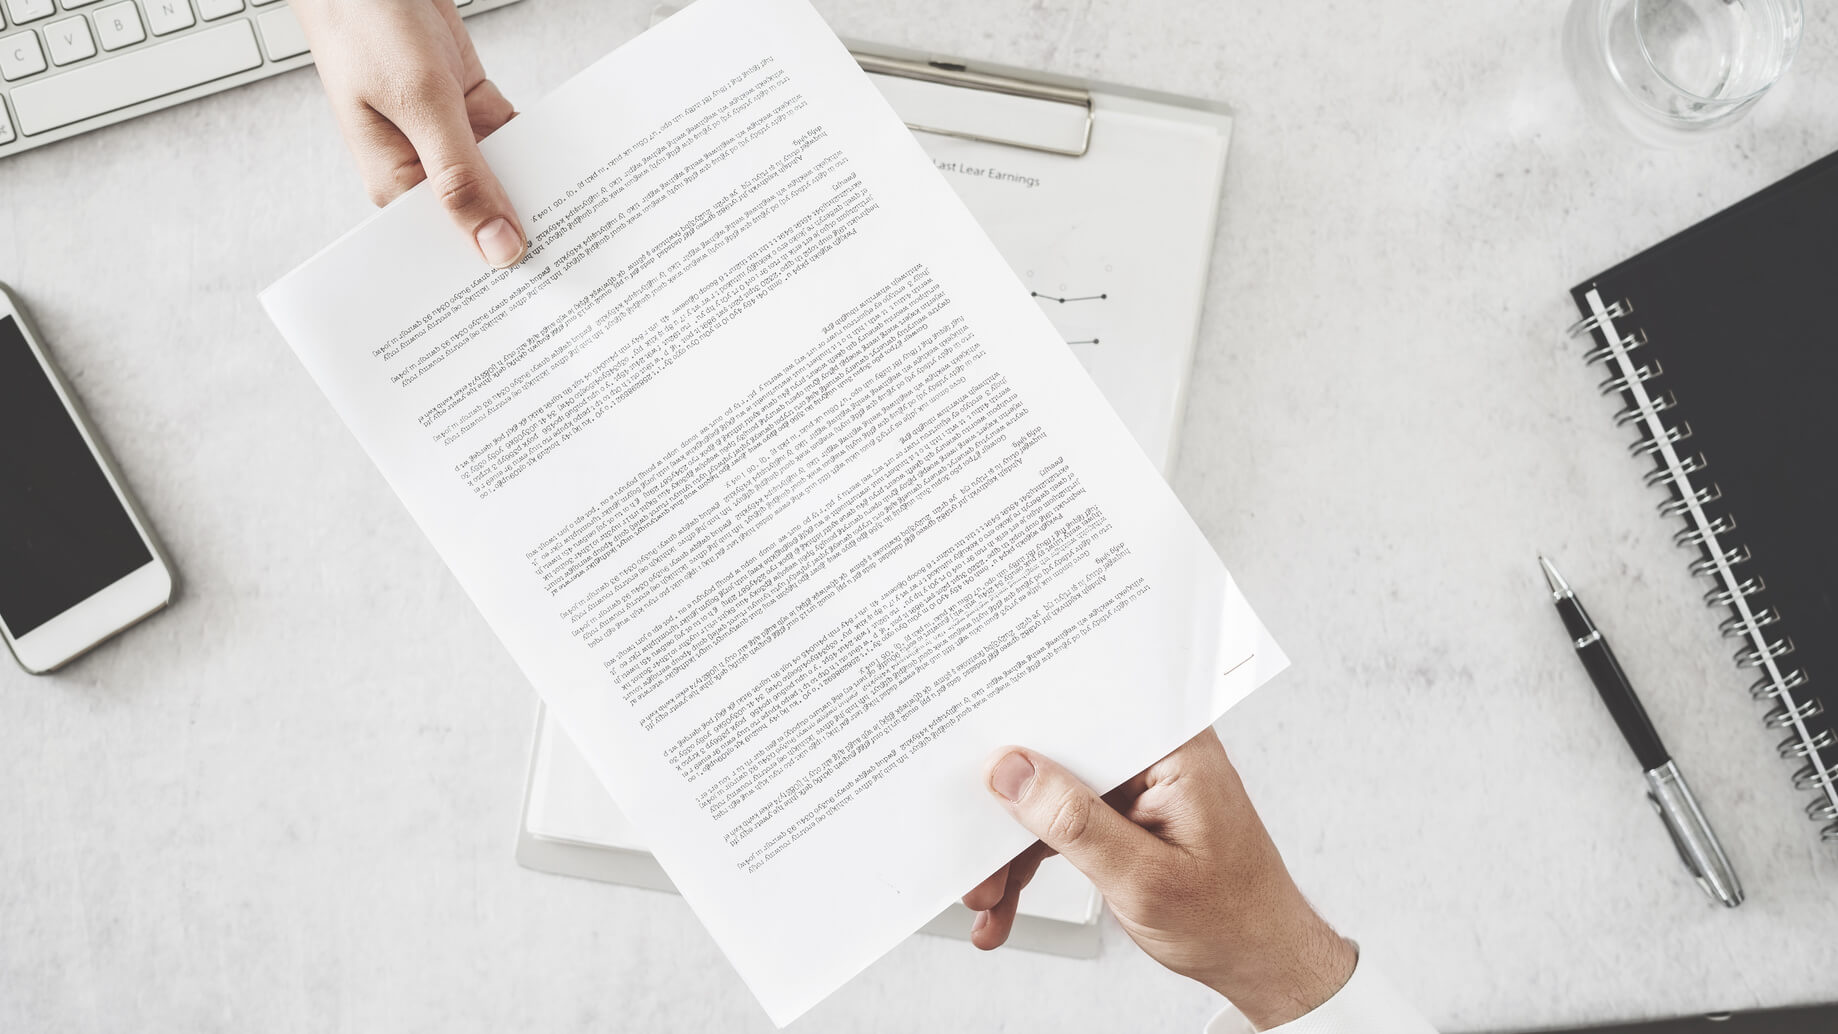 Frequently Asked Questions about Registered agents